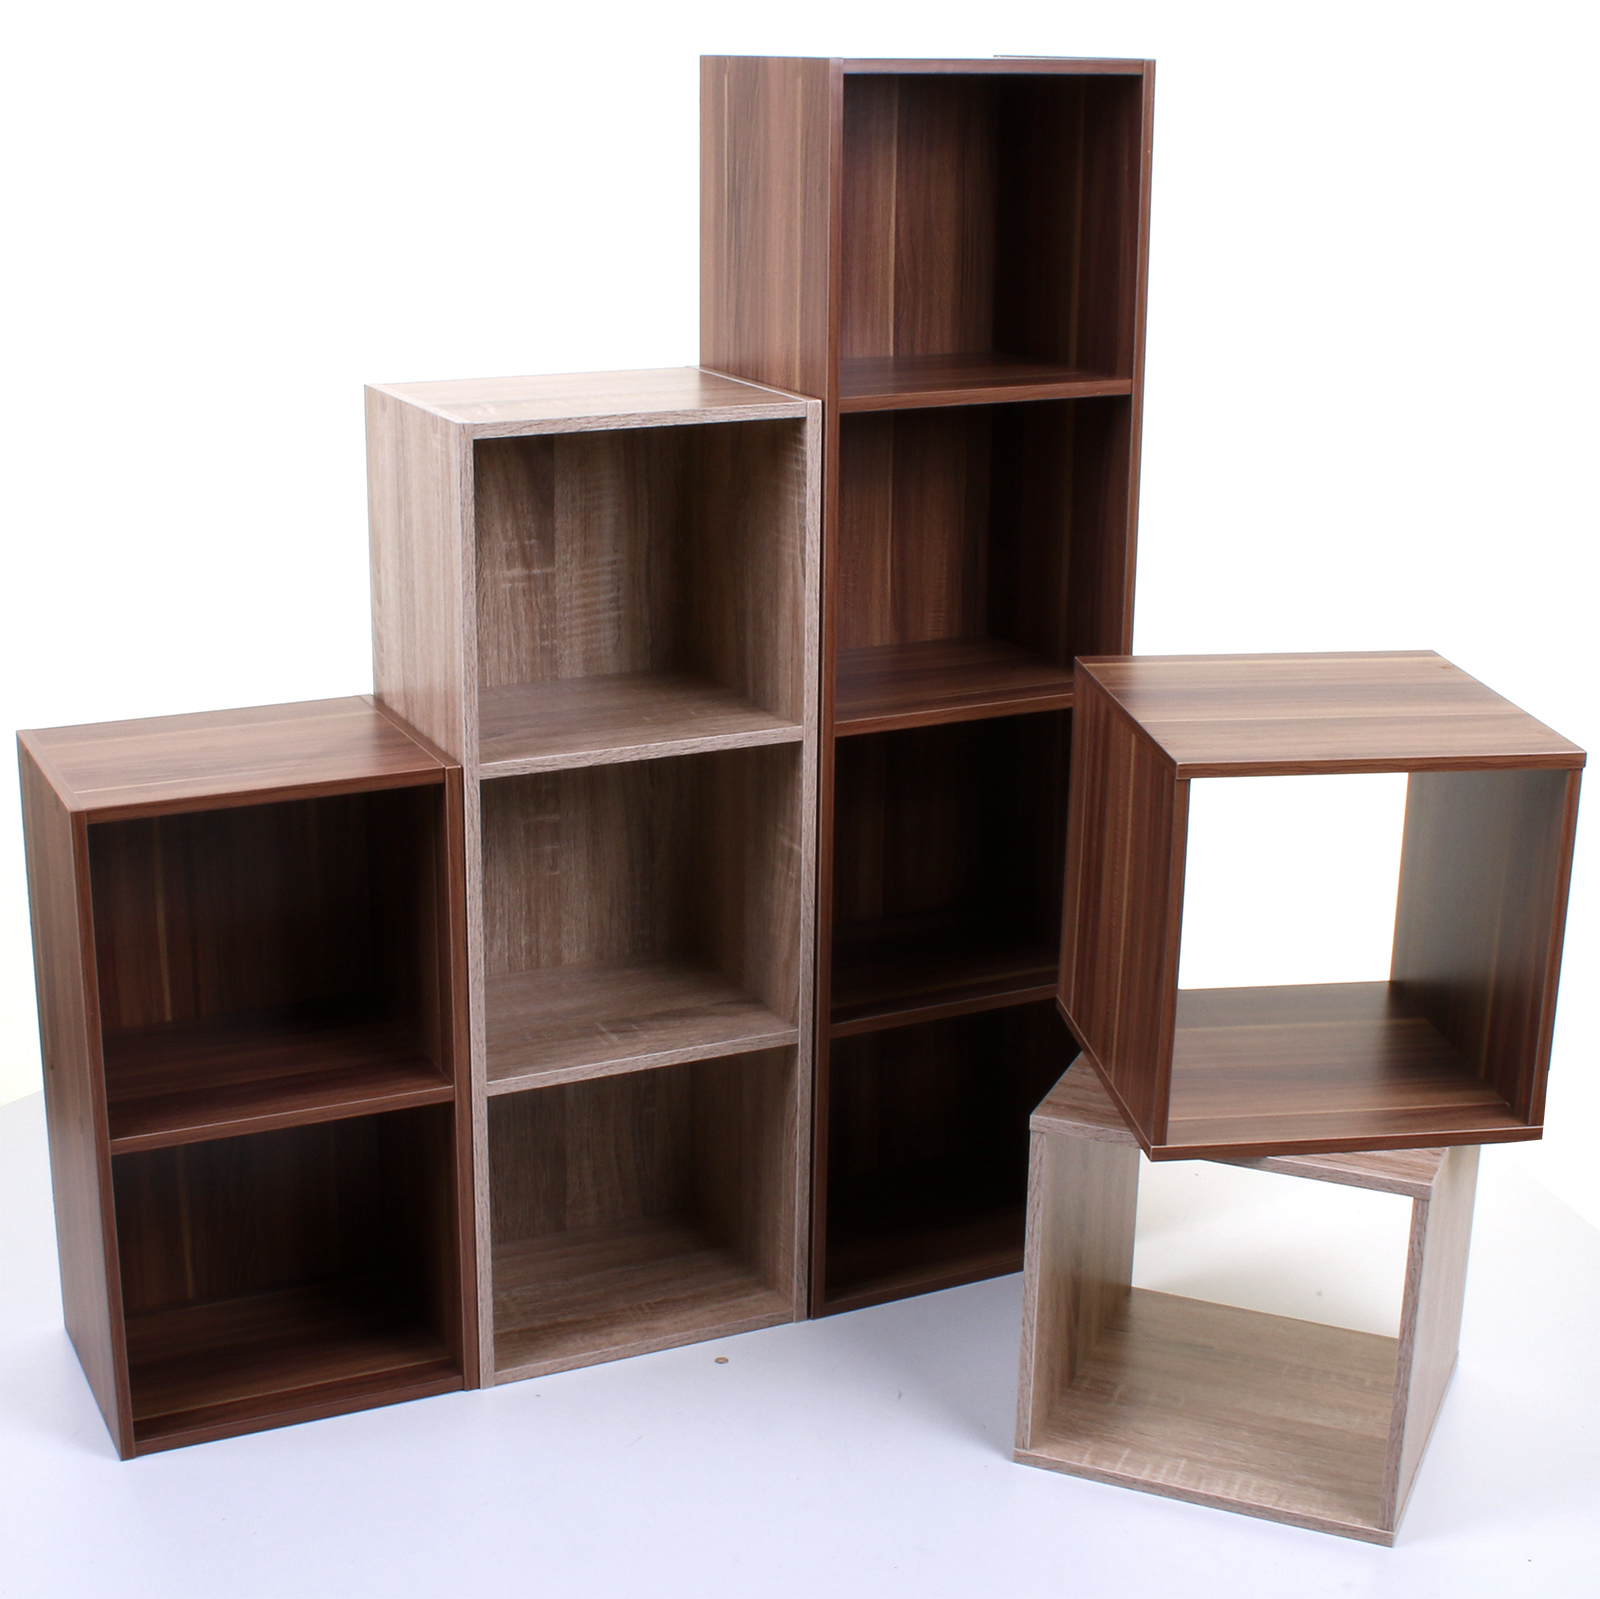 Cube Storage Shelves 2 3 4 Tier Wooden Bookcase Shelving Display Shelves